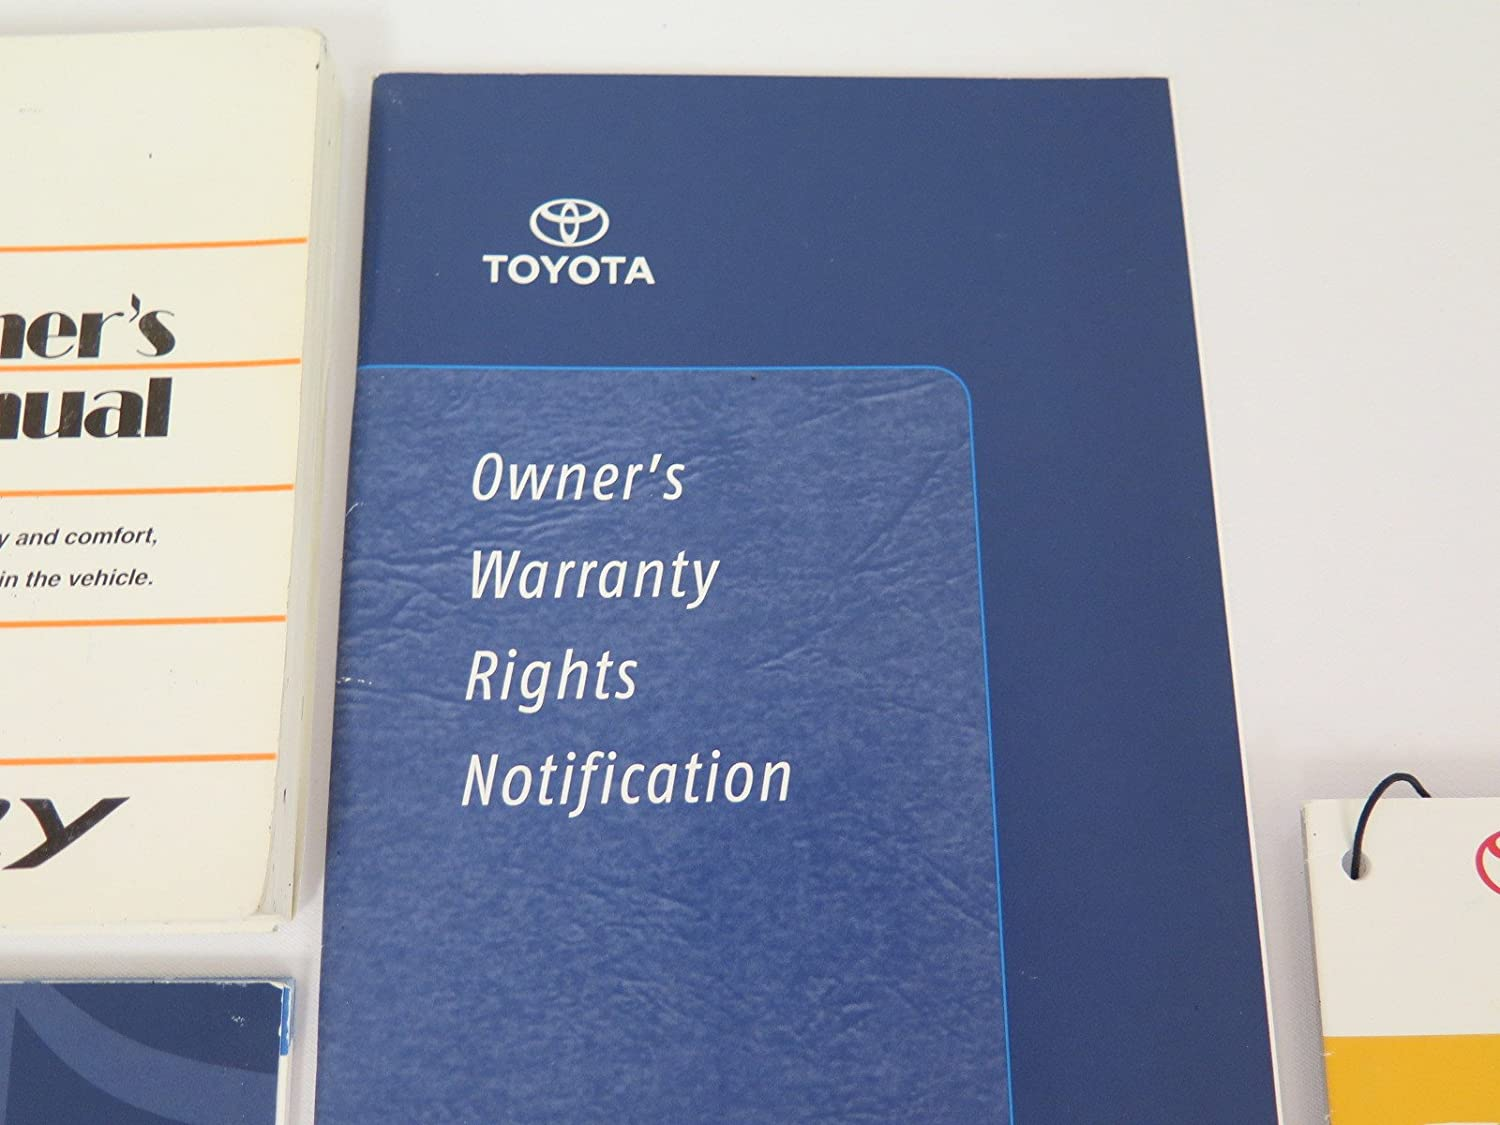 Amazon.com: 2007 Toyota Camry Owner's Manual: Toyota Motor Co.: Automotive